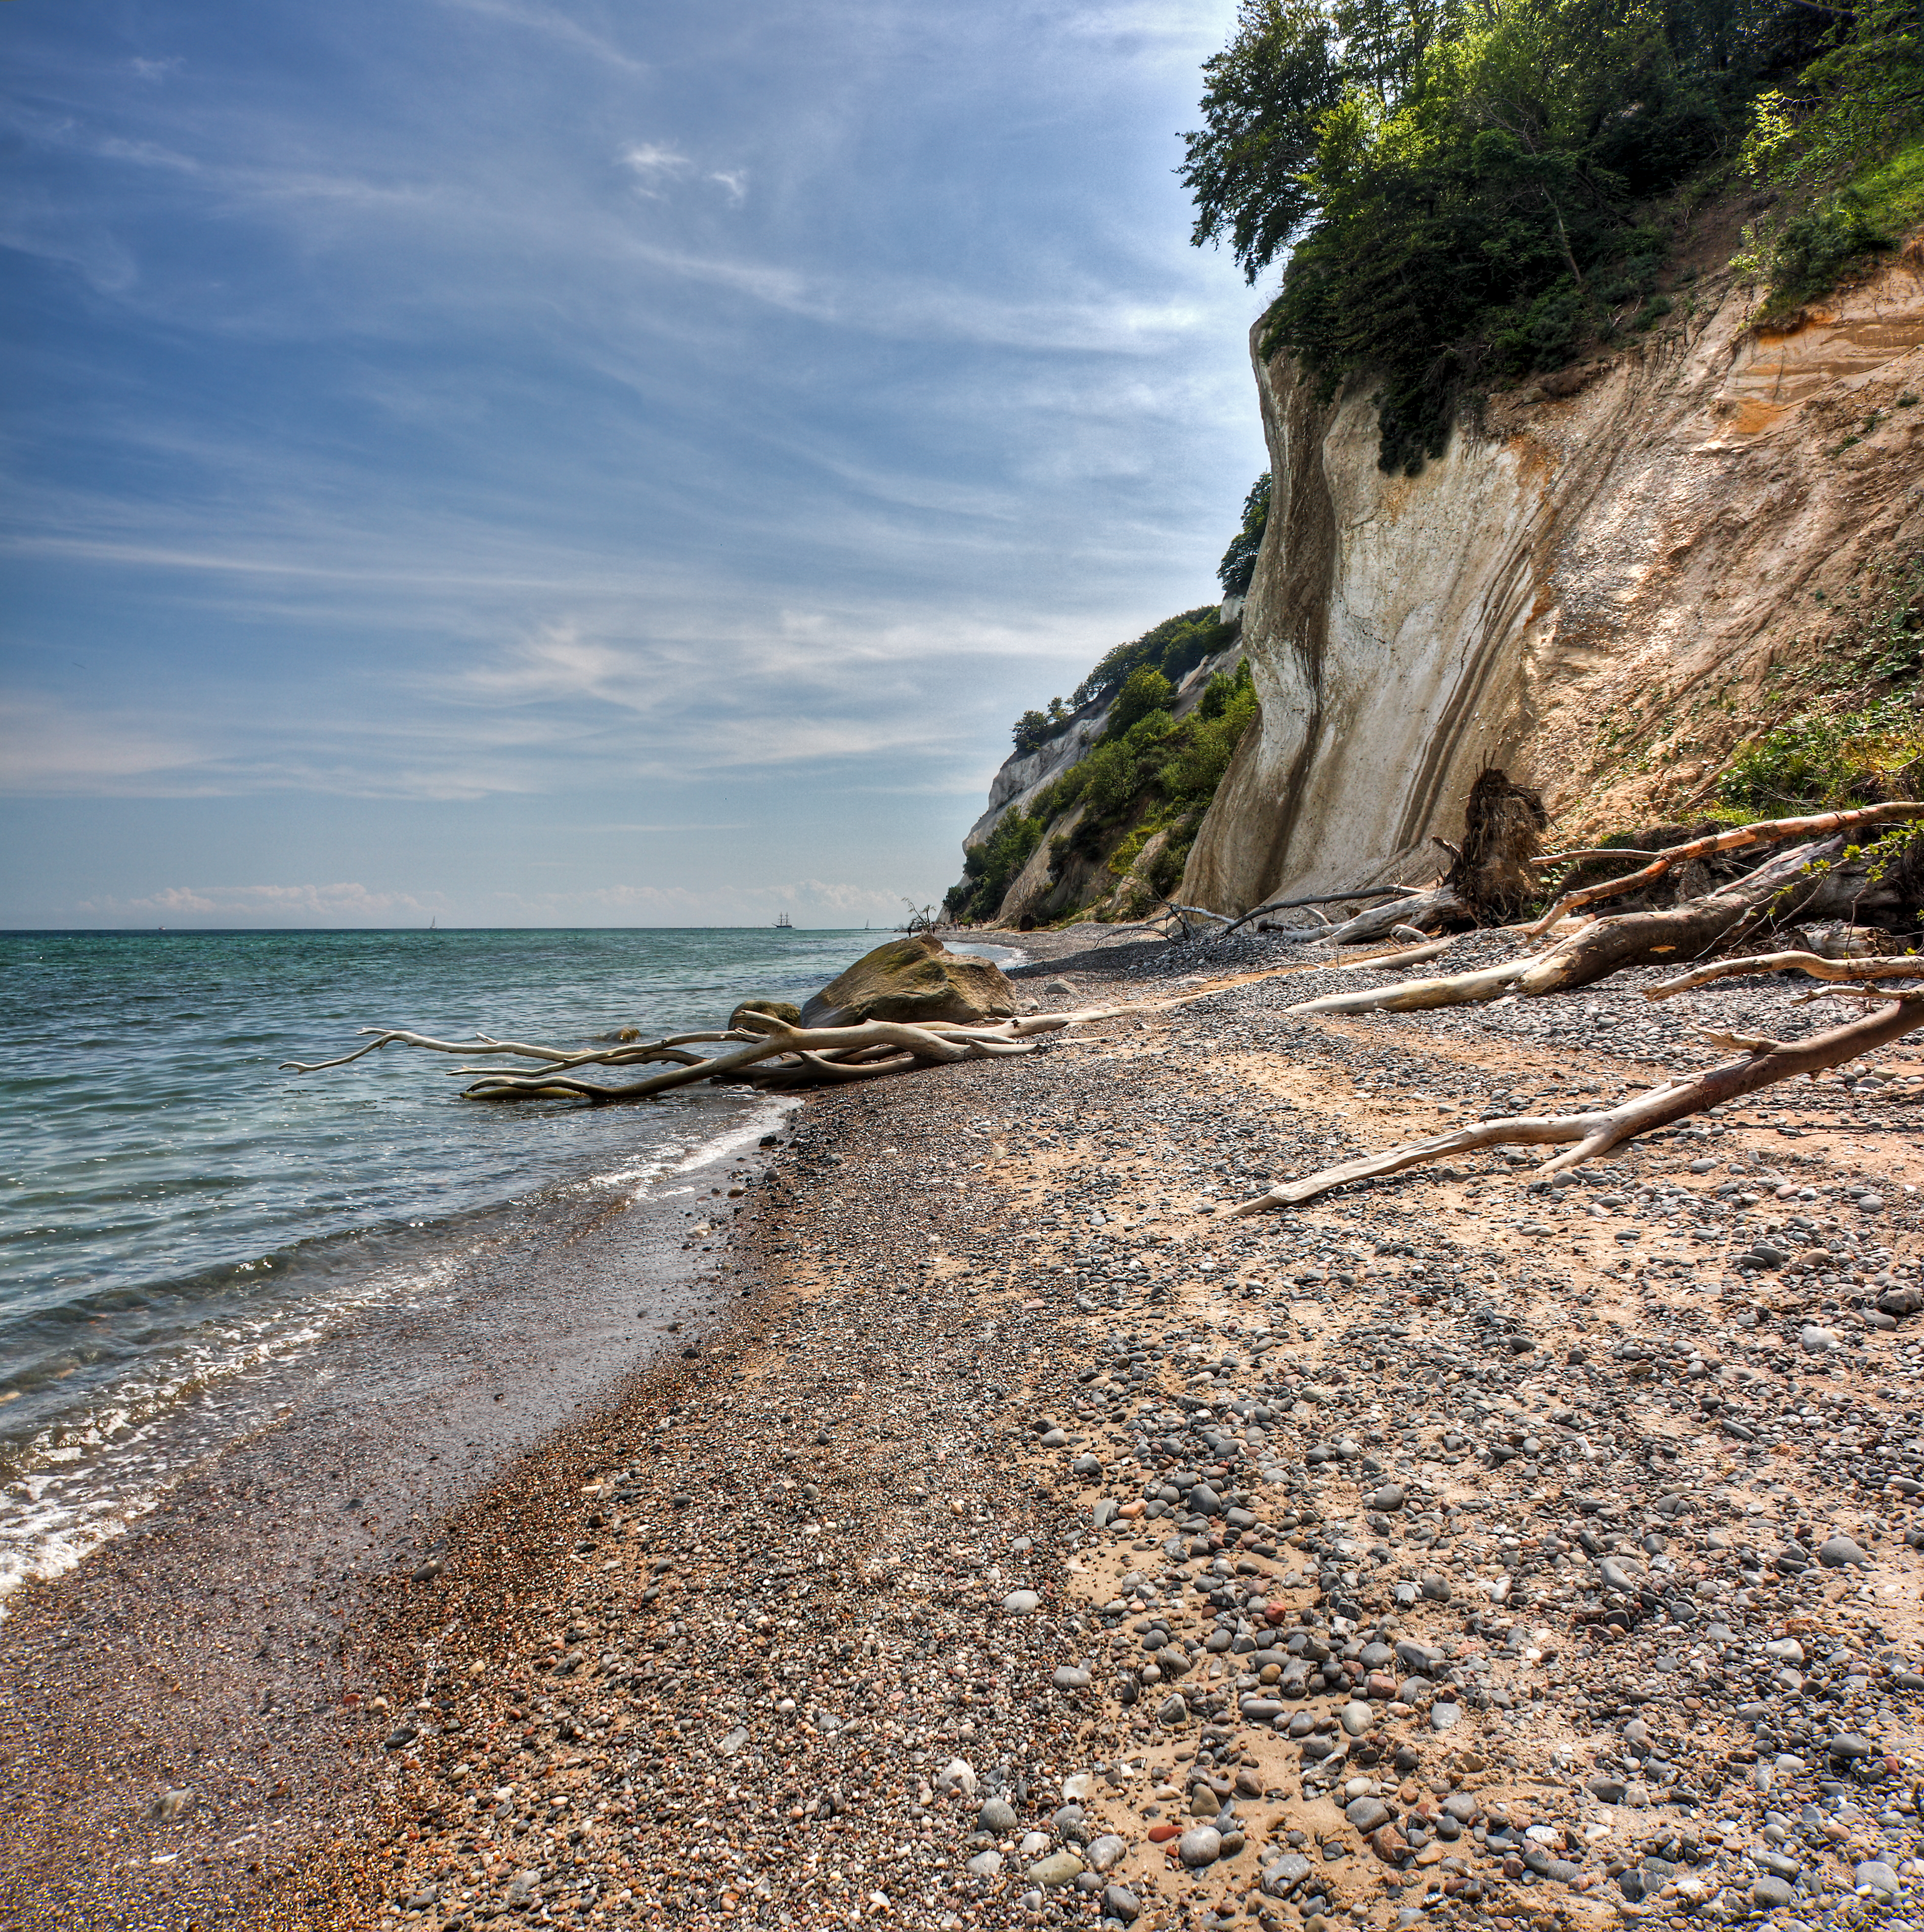 Image is made ​​of 2 widescreen images overlaid on each other (panorama), ie 2x 3 Exposure to AEB of + -1.5 (hdr)  Møns Klint, English: the Cliffs of Møn. The chalk forming the cliffs consists of the remains of shells from millions of microscopic creatures (coccolithophores) which lived on the seabed over 70 million years ago. As a result of huge pressure from glaciers moving west, the terrain was compacted and pushed upwards, forming a number of hills and folds. When the ice melted at the end of the last ice age about 11,000 years ago, the cliffs emerged. They form part of the same deposits as the cliffs of Rügen, Germany, on the other side of the Baltic. Today, it is possible to find fossils of various types of shellfish as the sea continues to erode the chalk. Erosion also caused one of the highest points on the cliffs, the Sommerspir, to fall into the sea in 1998, and in January 2007, there was an even larger landslide around the Store Taler, in the northern part of the cliffs, creating a 300-m long peninsula of chalk and fallen trees stretching out into the sea below. source: en.wikipedia.org/wiki/M%C3%B8ns_Klint  All Rights Reserved © René Eriksen. Please do not use my pictures outside the Flickr, without my permission.